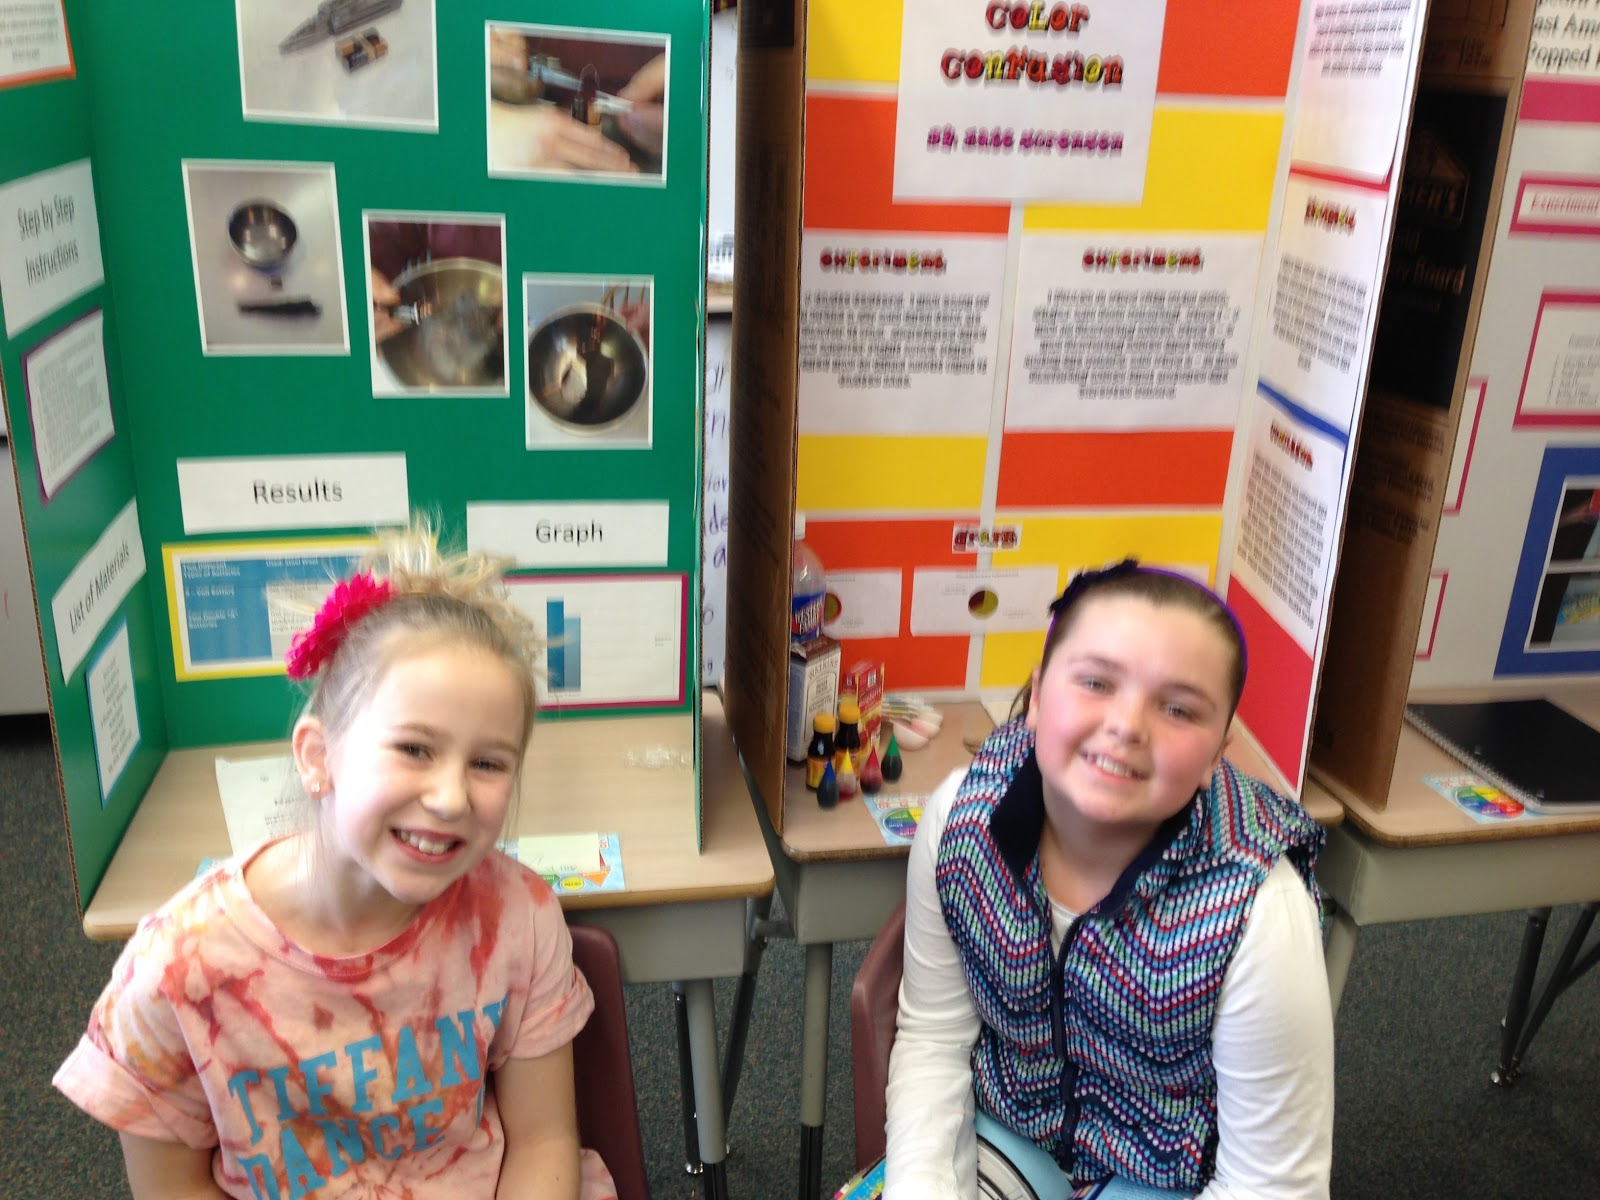 4th grade science fair projects for girls